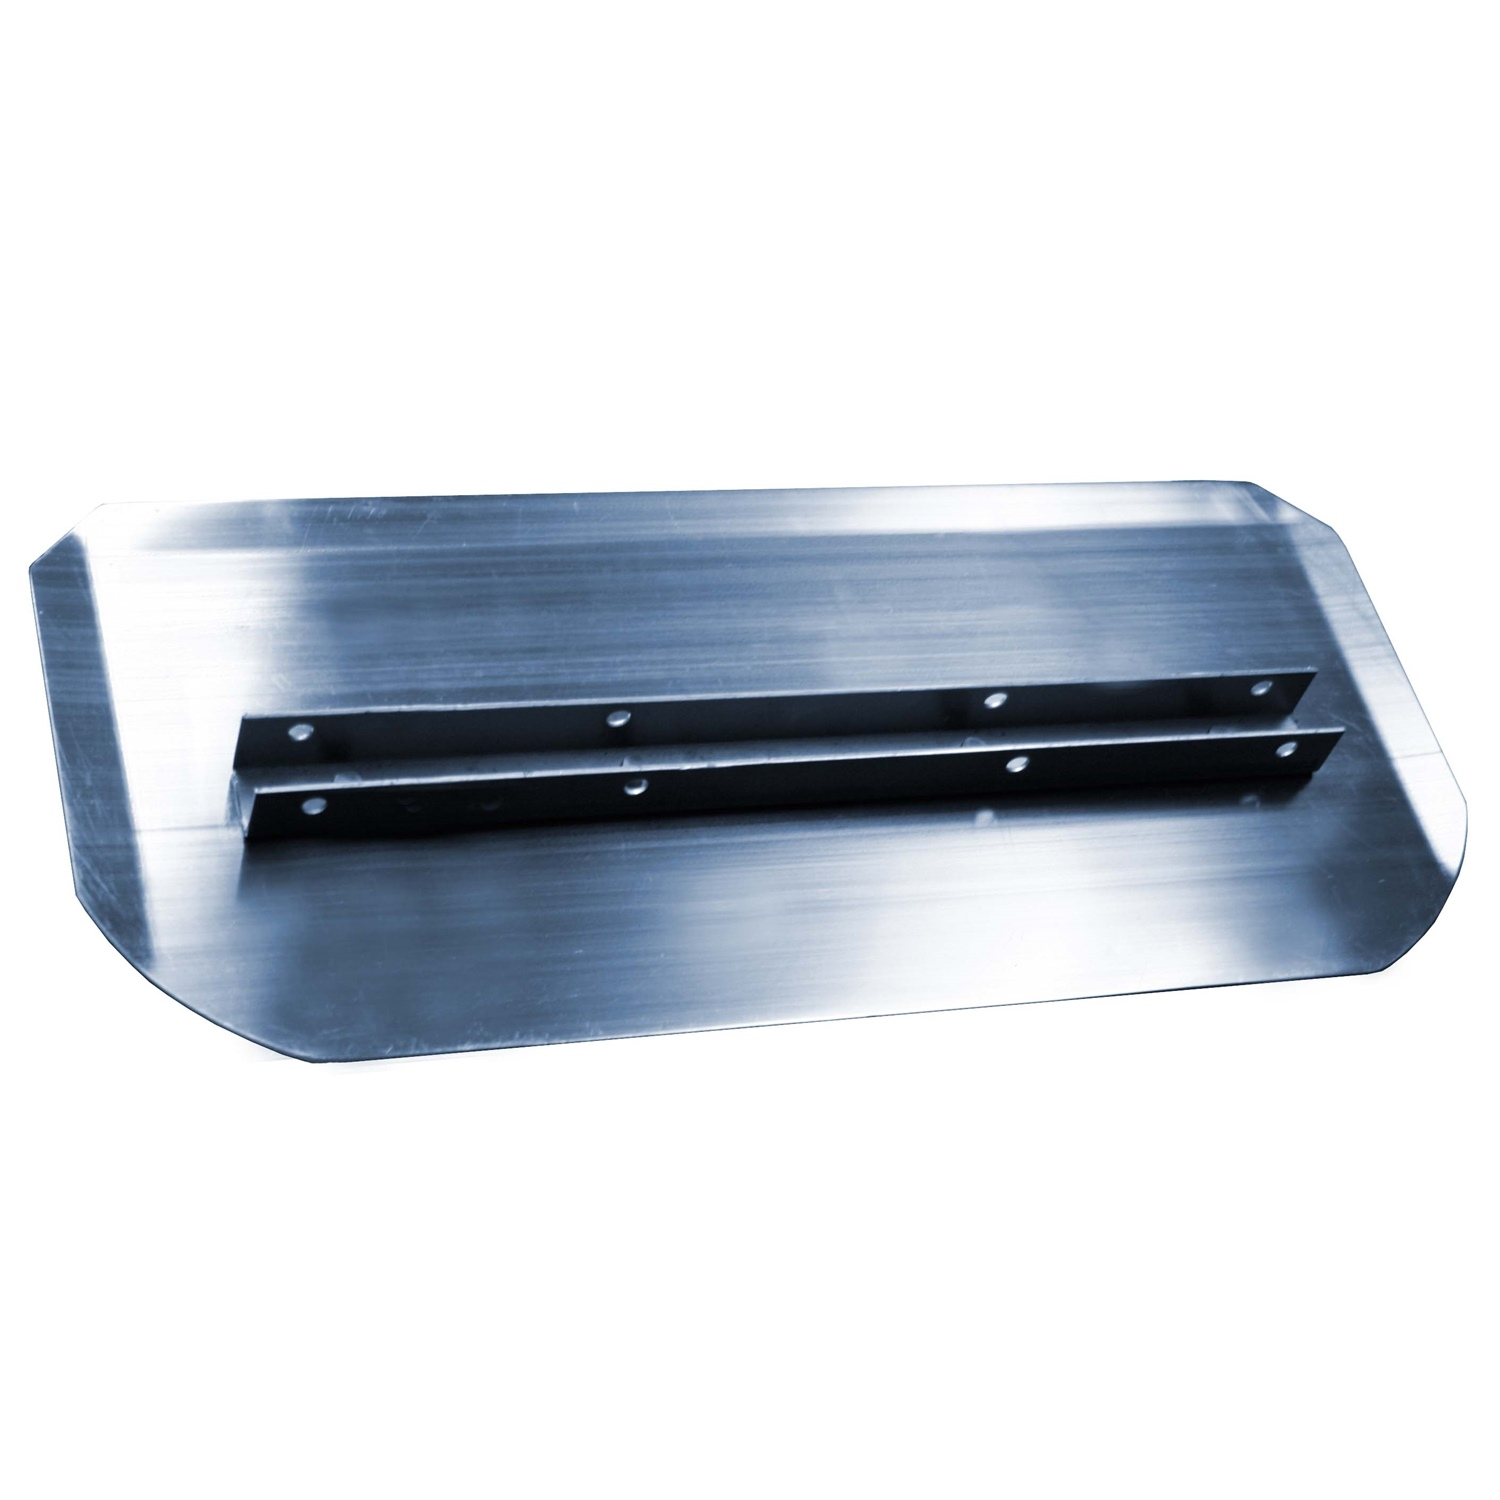 8inch X18inch Blue Offset Channel Combination Blade (4 Per Carton) - Sk231b - Concrete Tools Power Troweler Blades & Float Pans SK231B